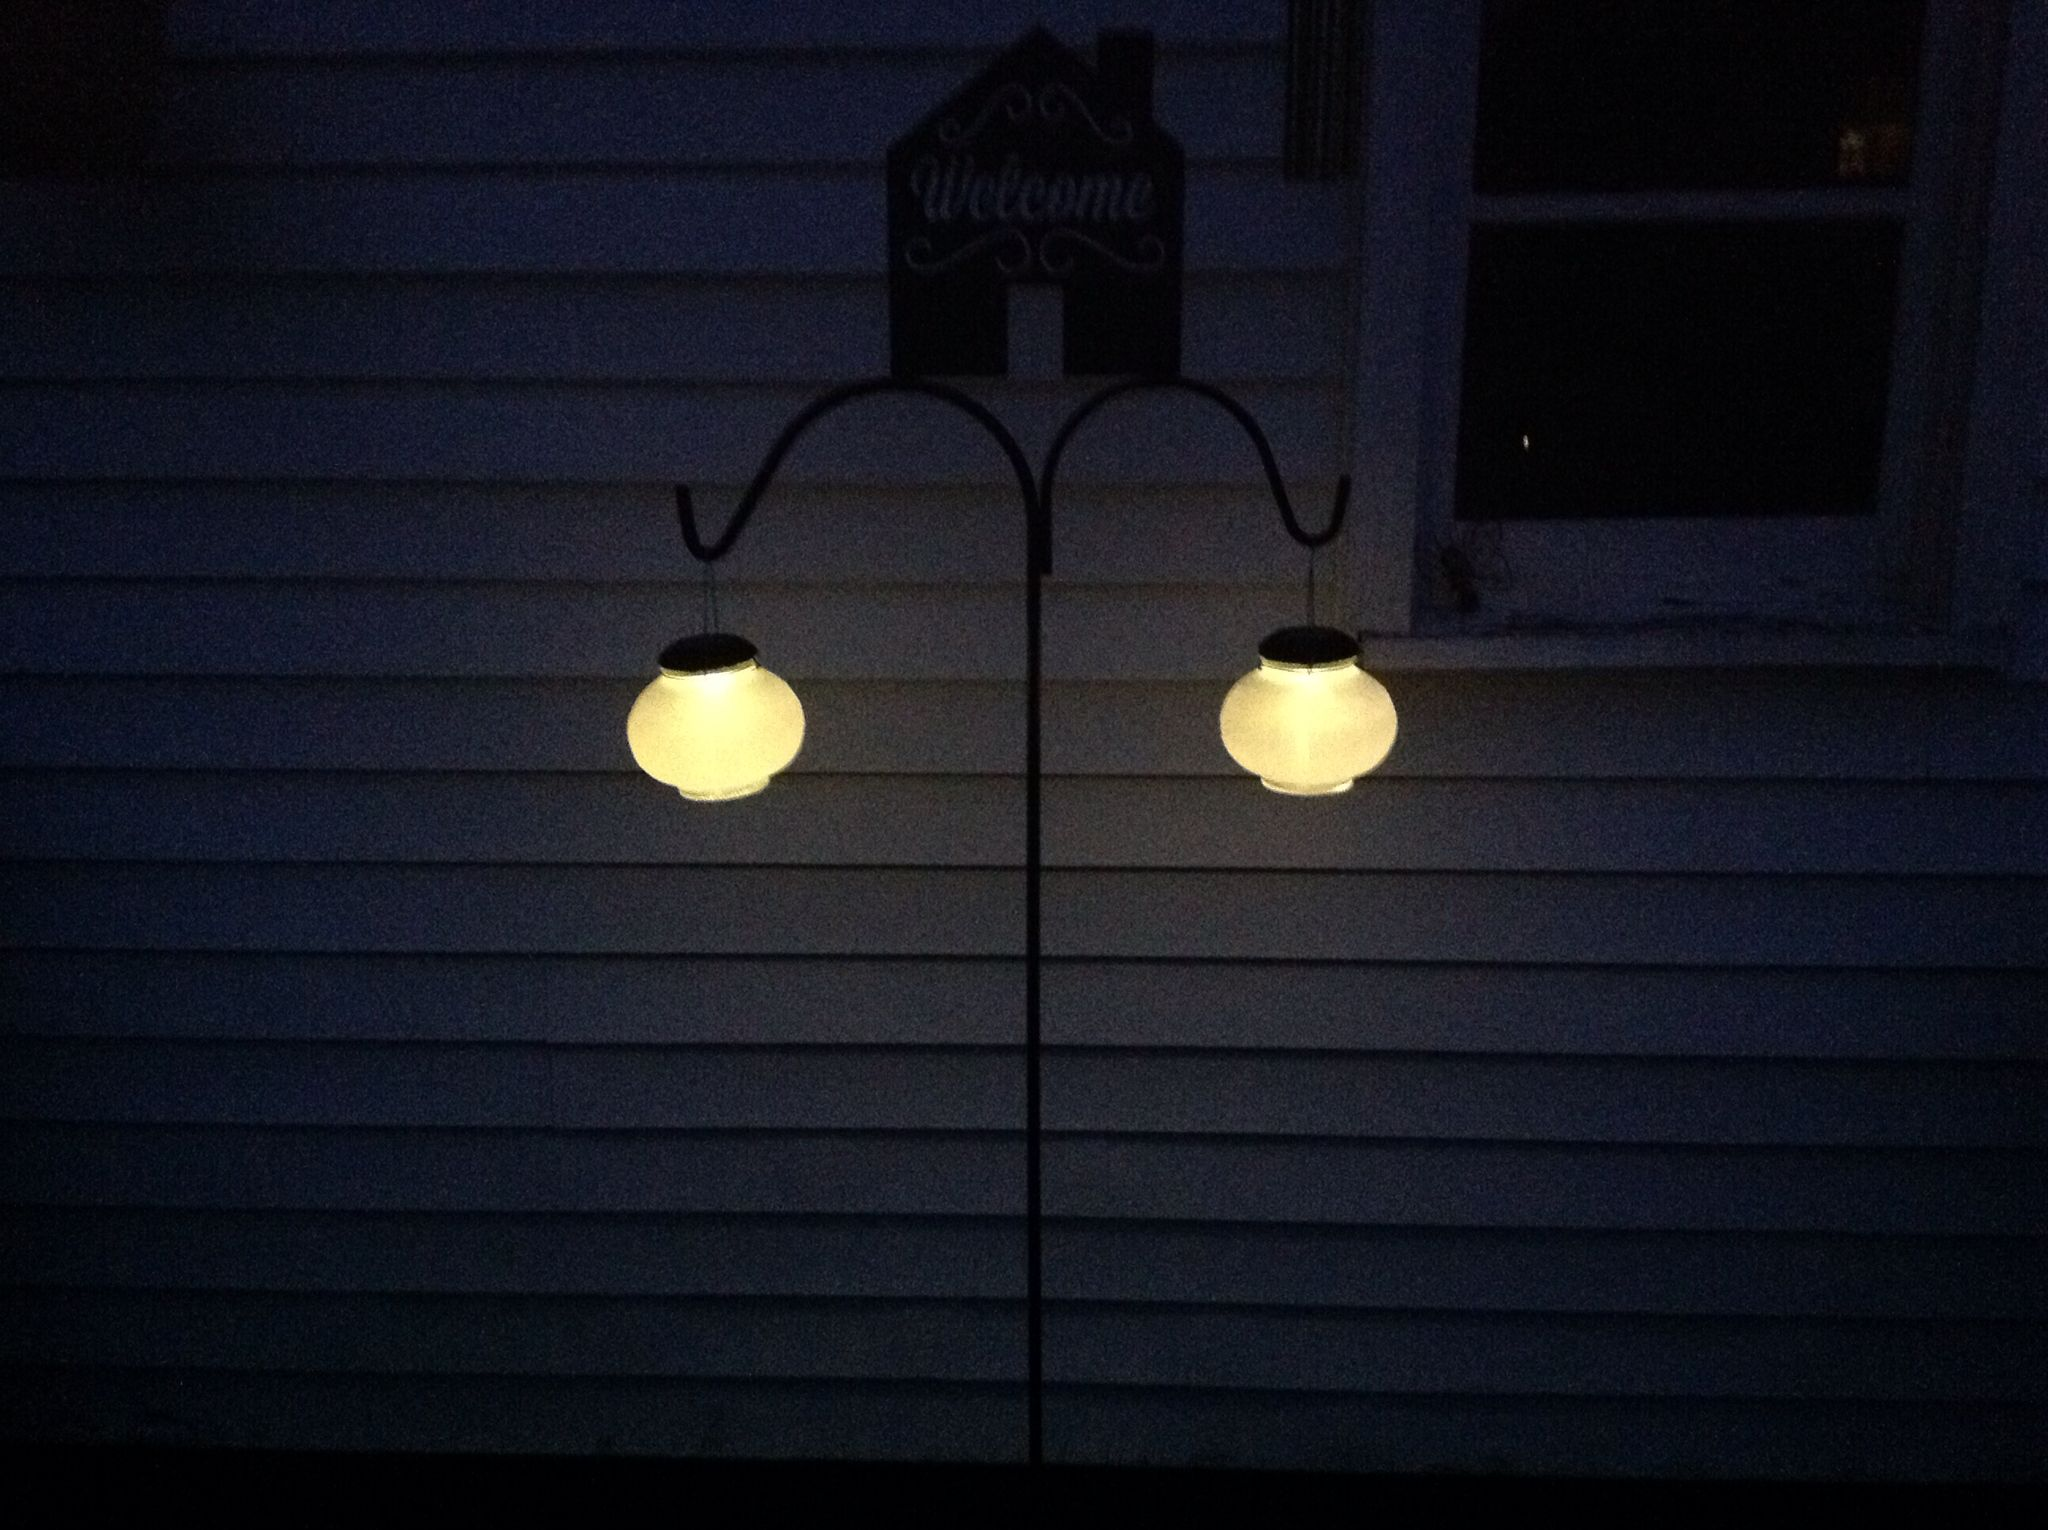 Outdoor Solar Lights Lowes Cool $2 Glass Light Globes From Habitat Restore  $298 Solar Lights From